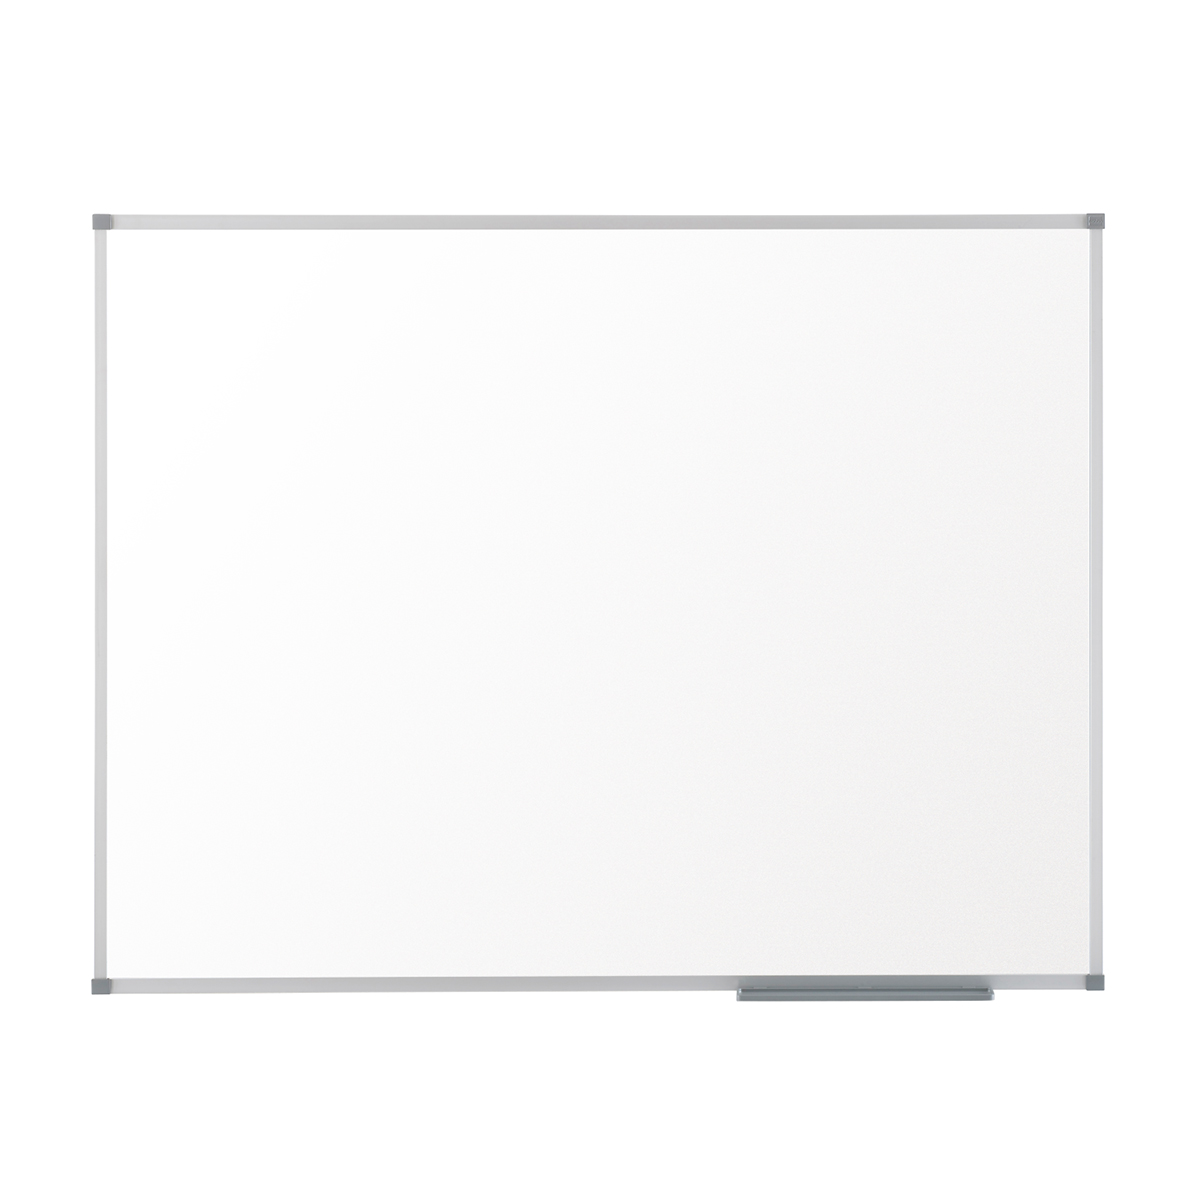 Nobo 1902643 Classic Steel Magnetic Whiteboard 1200 x 900mm